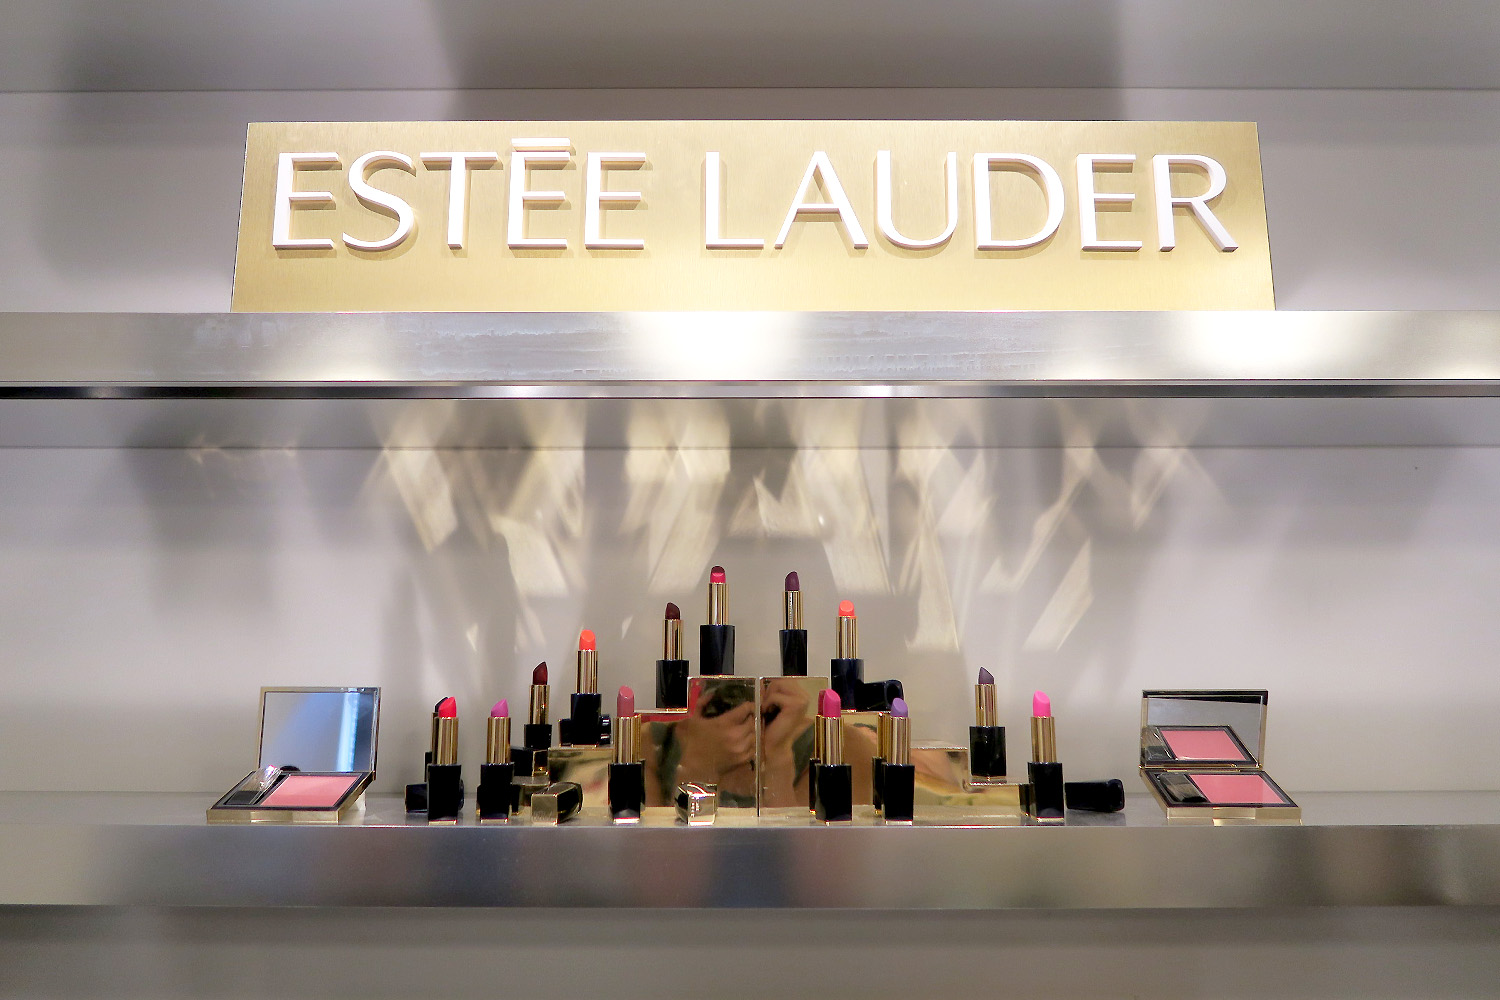 A look at Estee Lauder's Fall 2016 skincare and makeup collection!